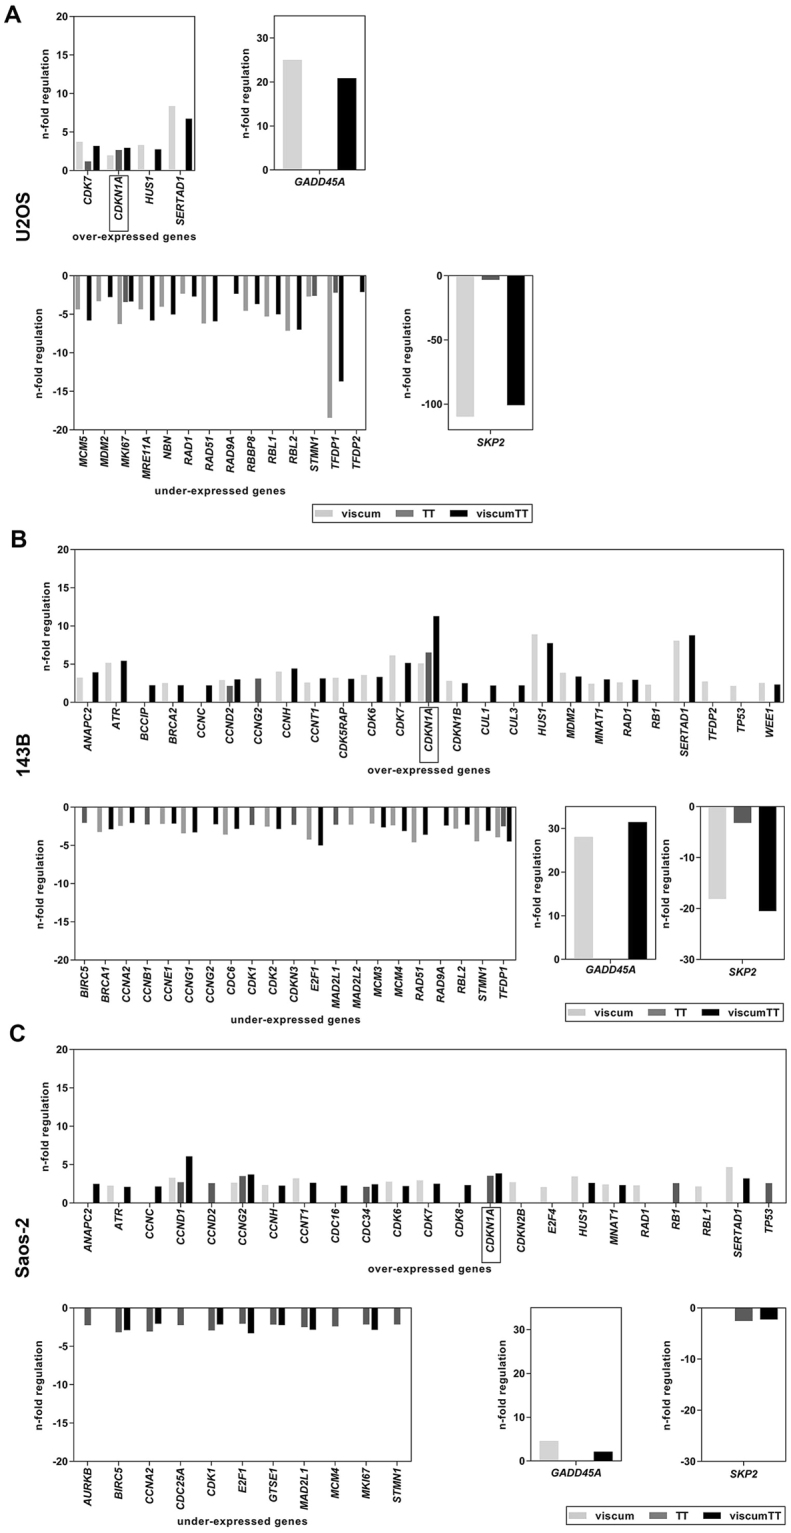 Viscum, TT and viscumTT alter cell cycle-related genes. Expression of cell cycle-related genes of U2OS ( A ), 143B ( B ), Saos-2 ( C ) cells were analyzed by RT² Profiler™ PCR Array after 24 h of viscum, TT and viscumTT treatment. For viscum, mistletoe lectin I (ML) 10 ng/mL, for TT, oleanolic acid (OA) 60 µg/mL and for viscumTT, ML+OA 5 ng/mL + 50 µg/mL were used. Array was performed once for each cell line and the fold-regulation cut-off was set to 2 and the p-value cut off was set to p ≤ 0.05 by the software.